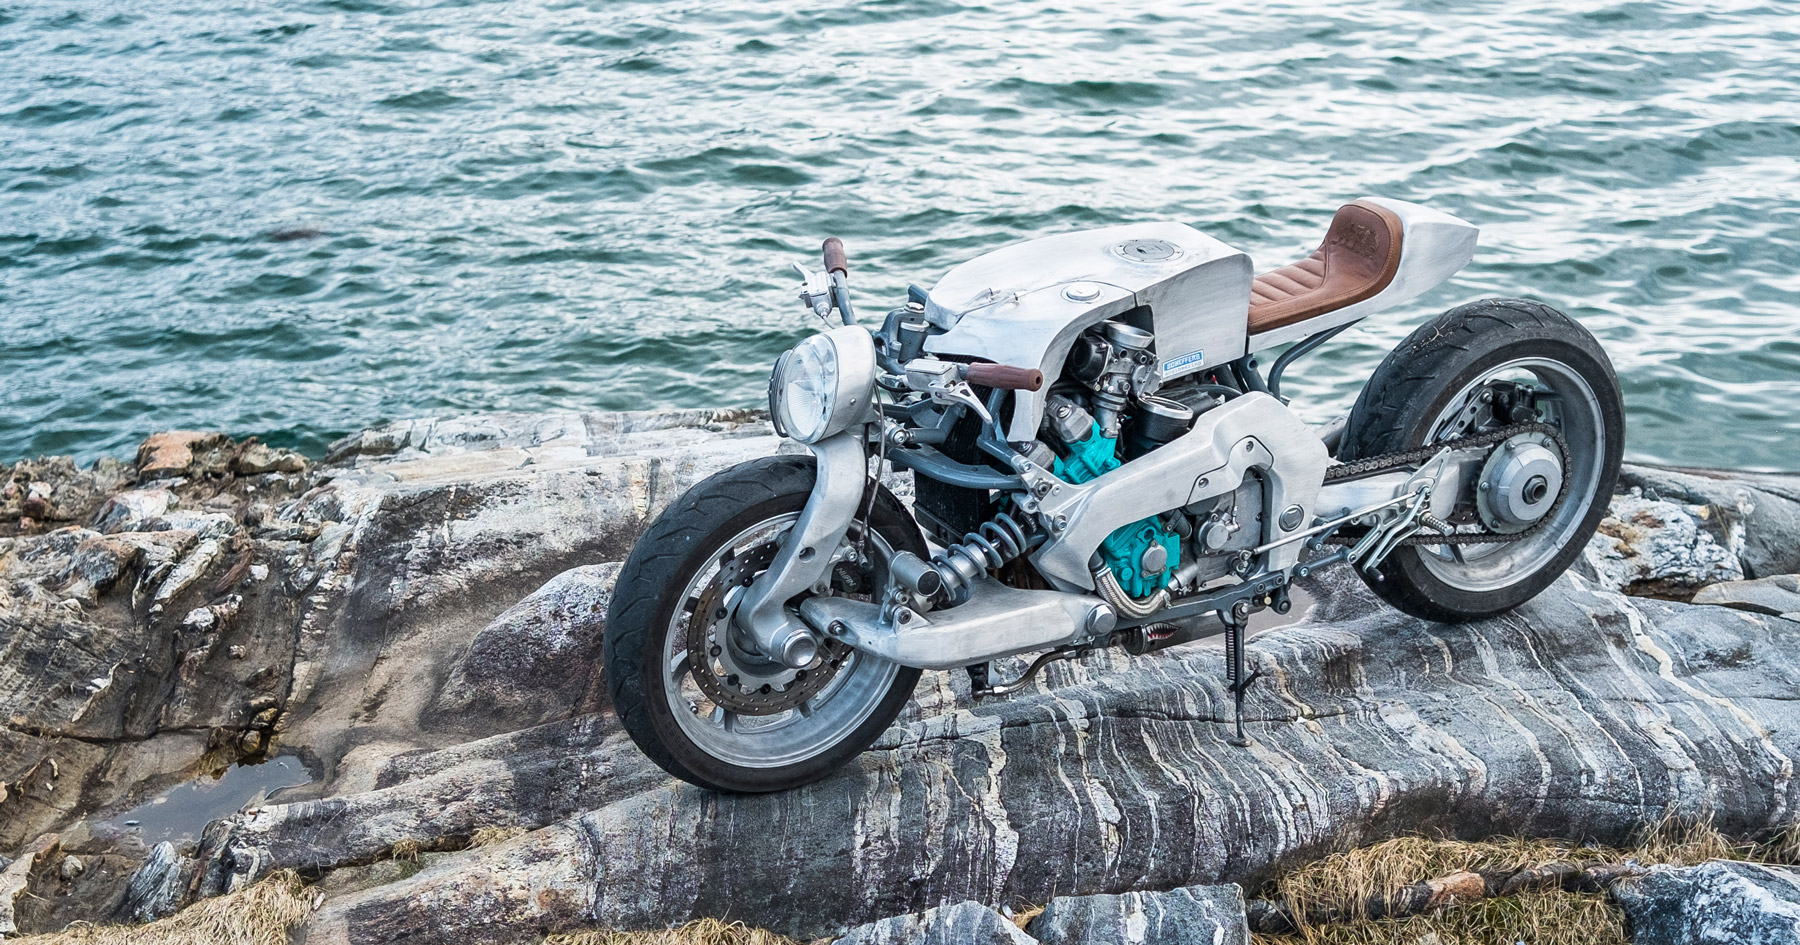 Sub Zero Cool: A Yamaha GTS 1000 from the Arctic Circle